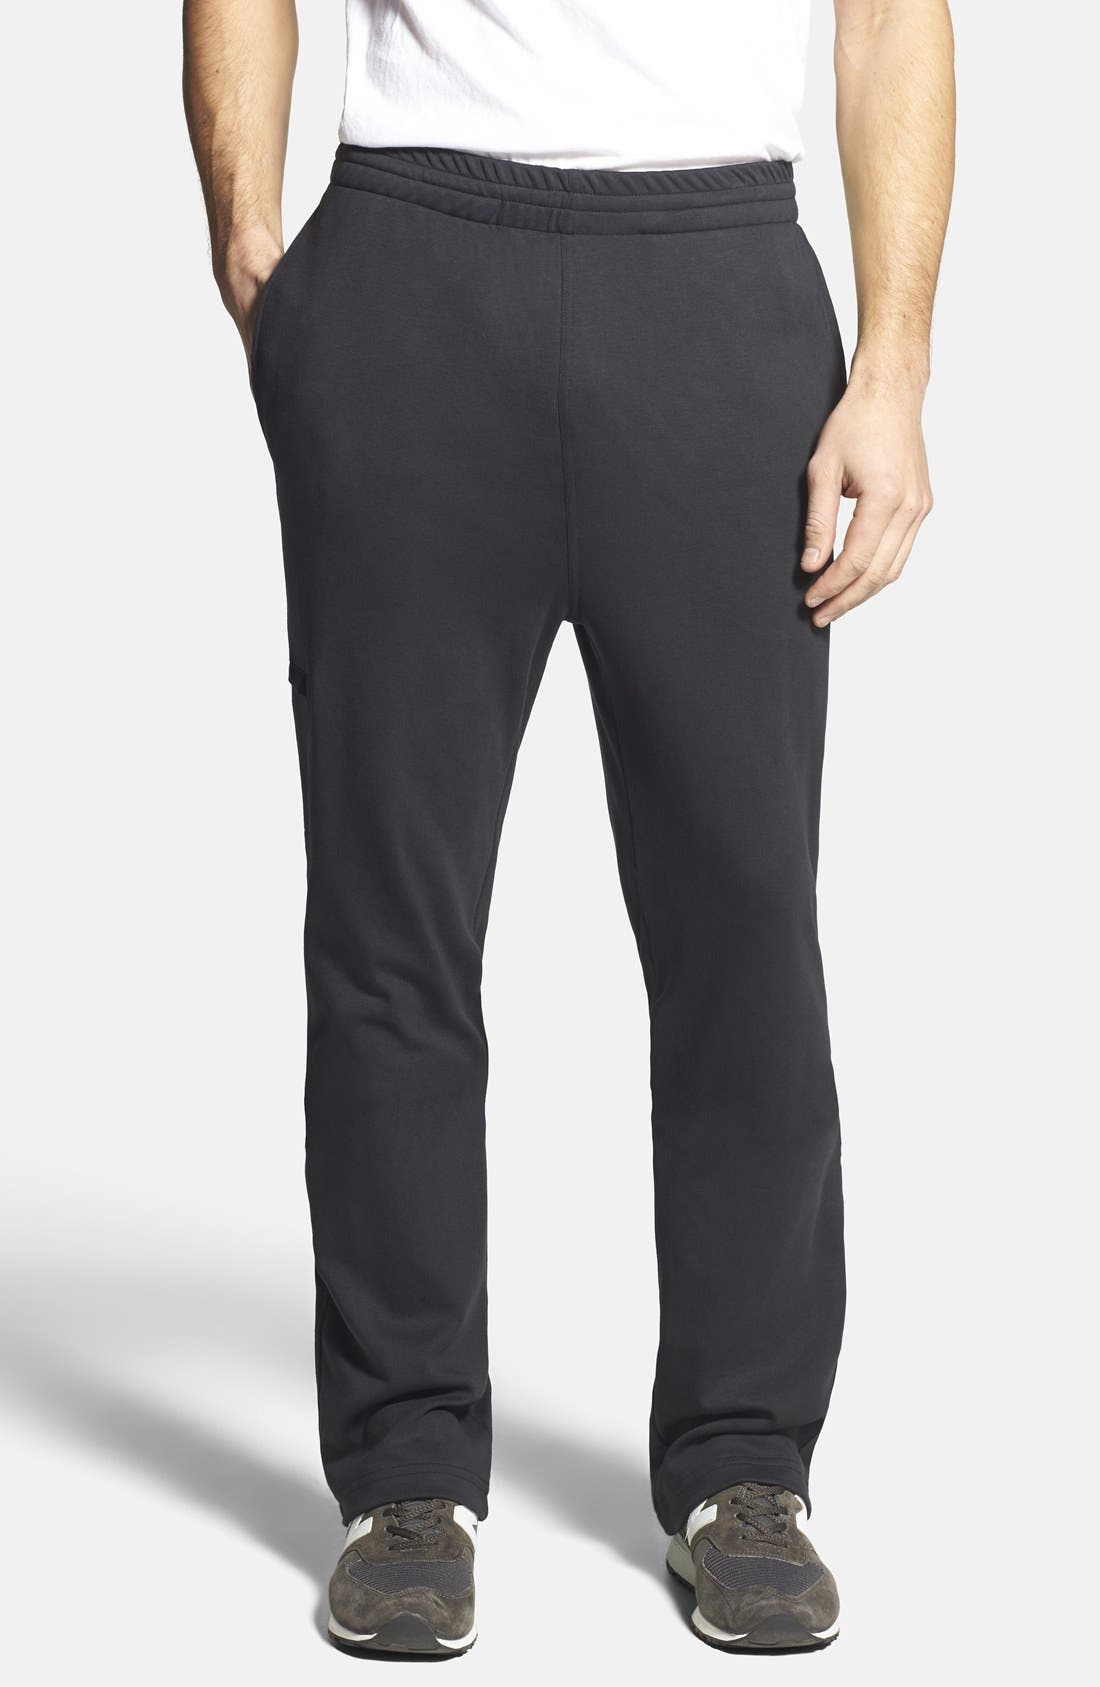 BOBBY JONES 'Leaderboard' Sweatpants